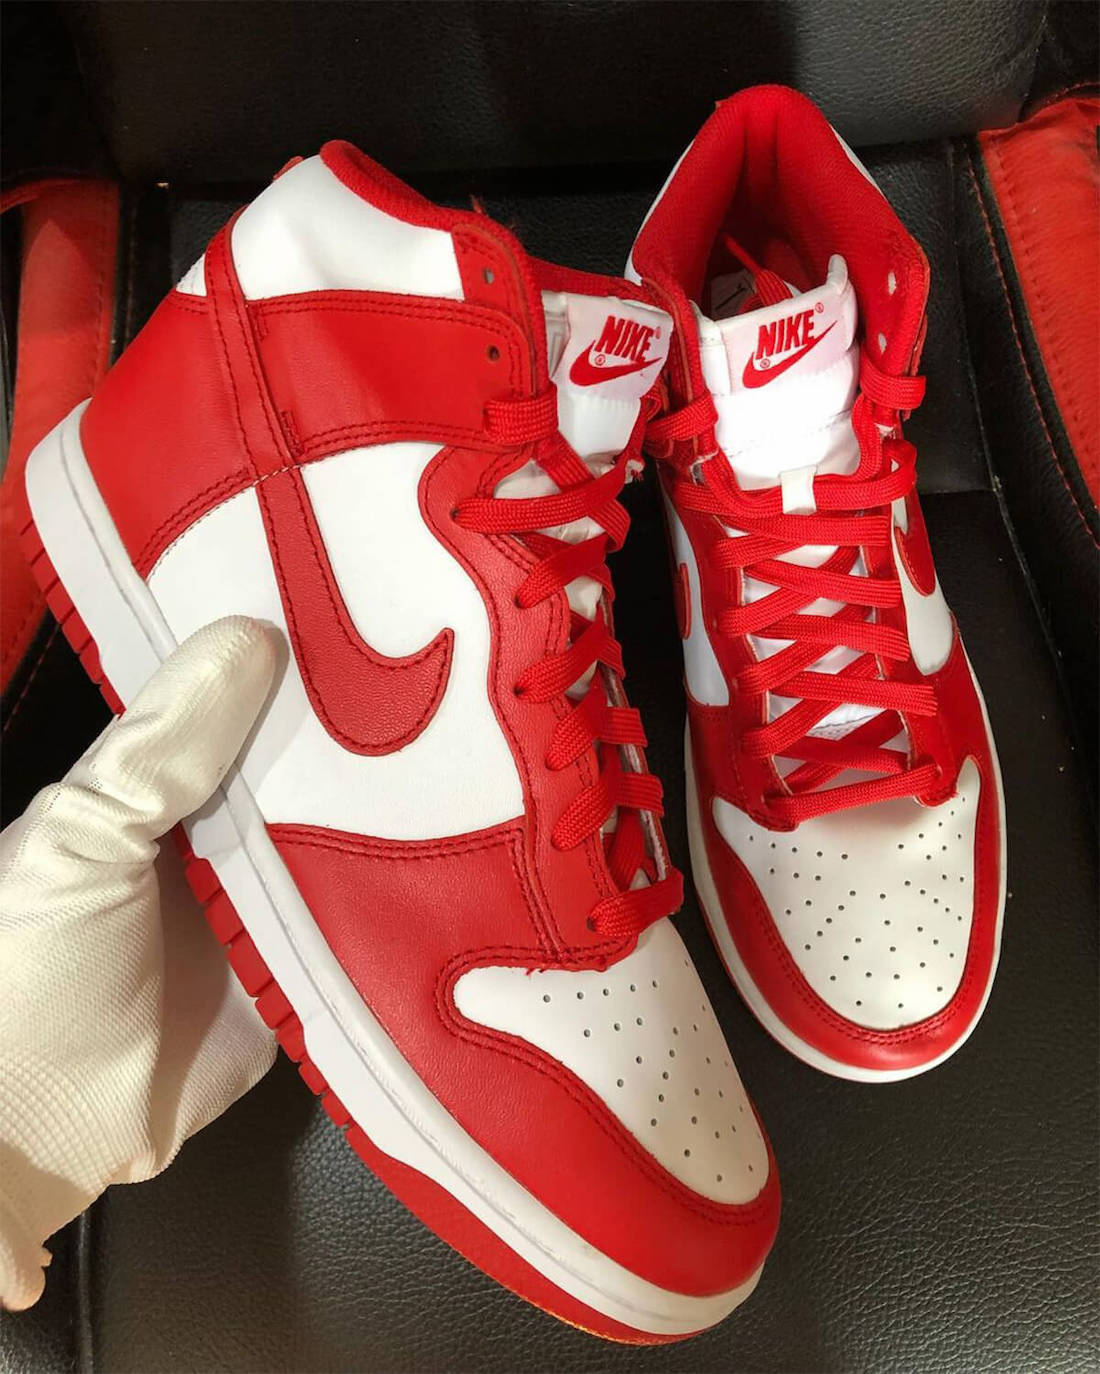 Nike Dunk High University Red Side View